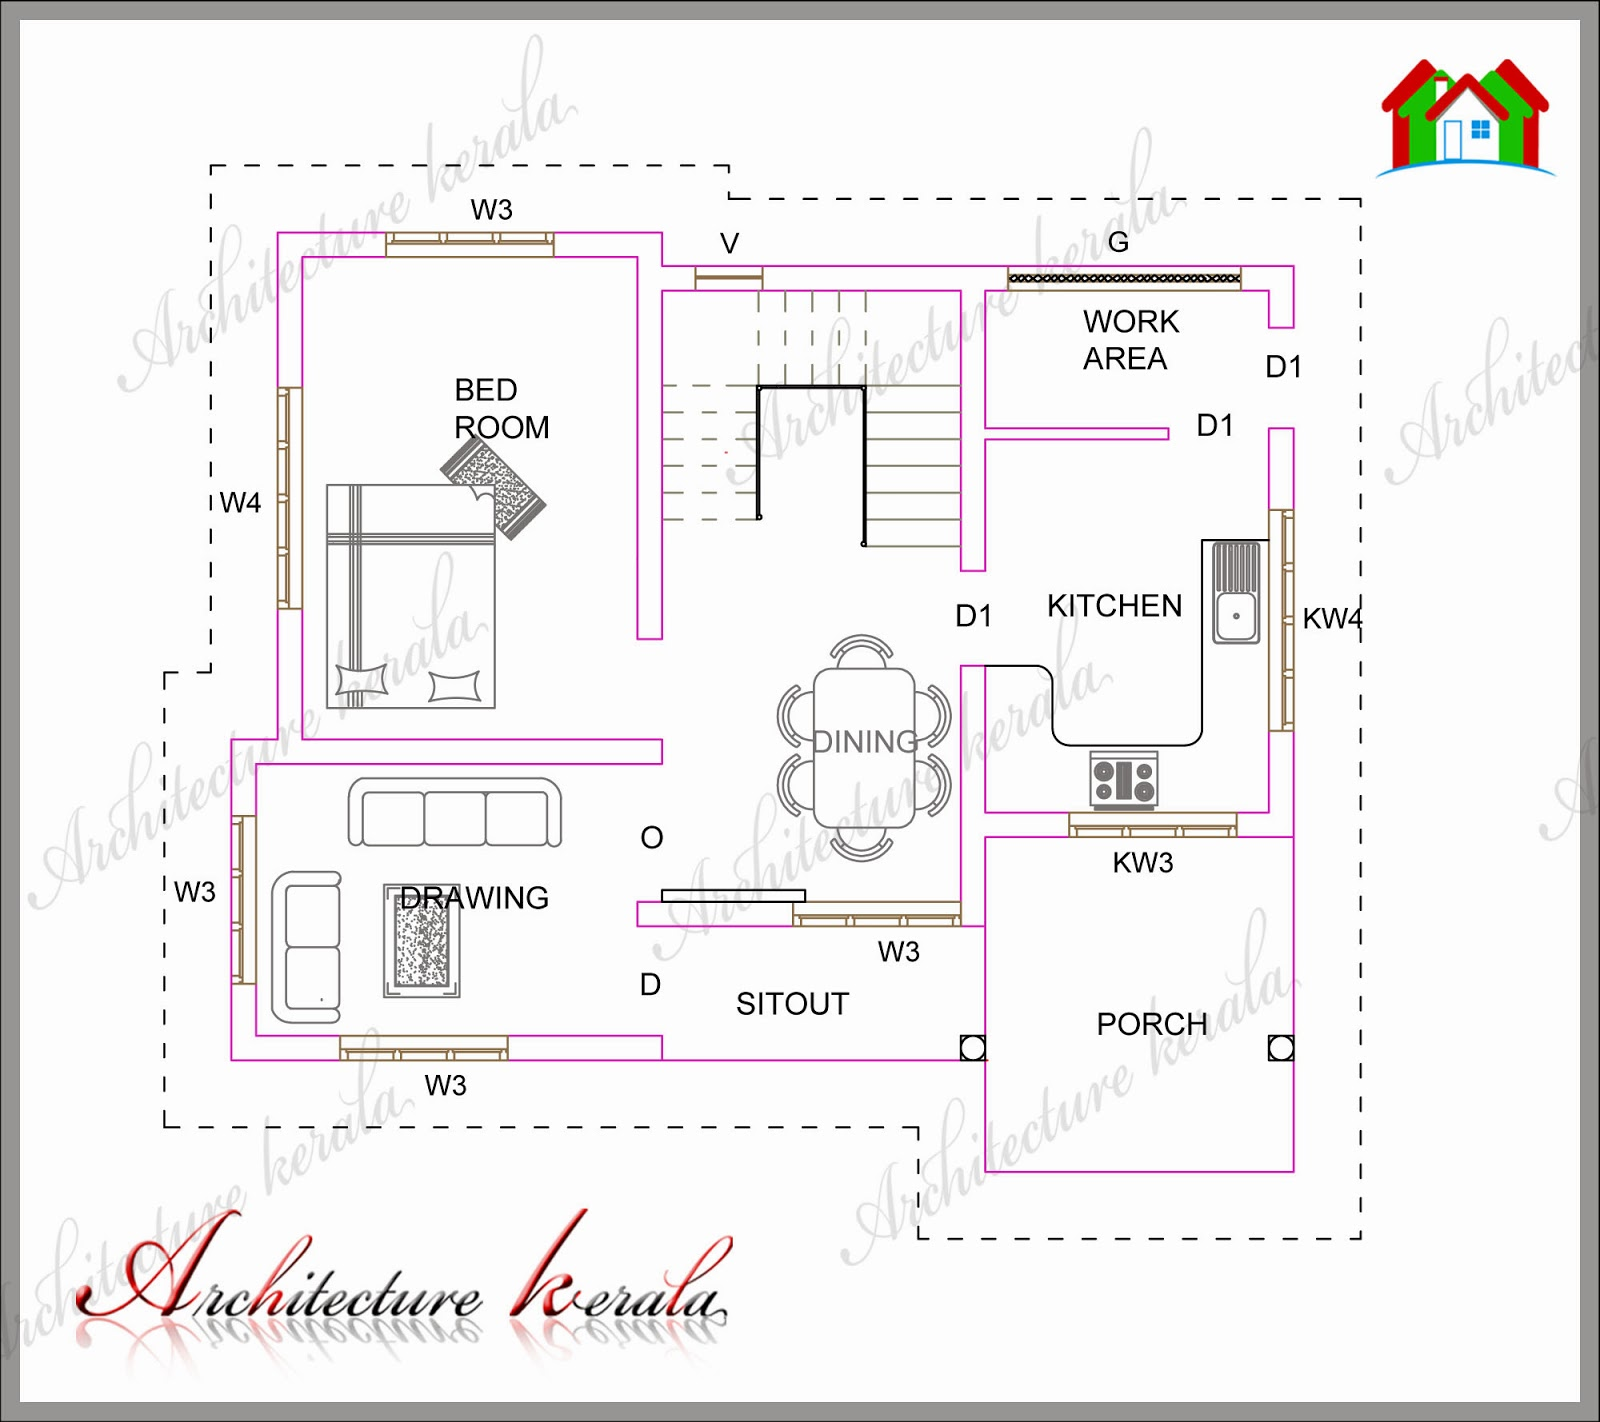 A SMALL KERALA HOUSE PLAN ARCHITECTURE KERALA : architecturekealaoctoberplan183 from www.architecturekerala.com size 1600 x 1422 jpeg 207kB